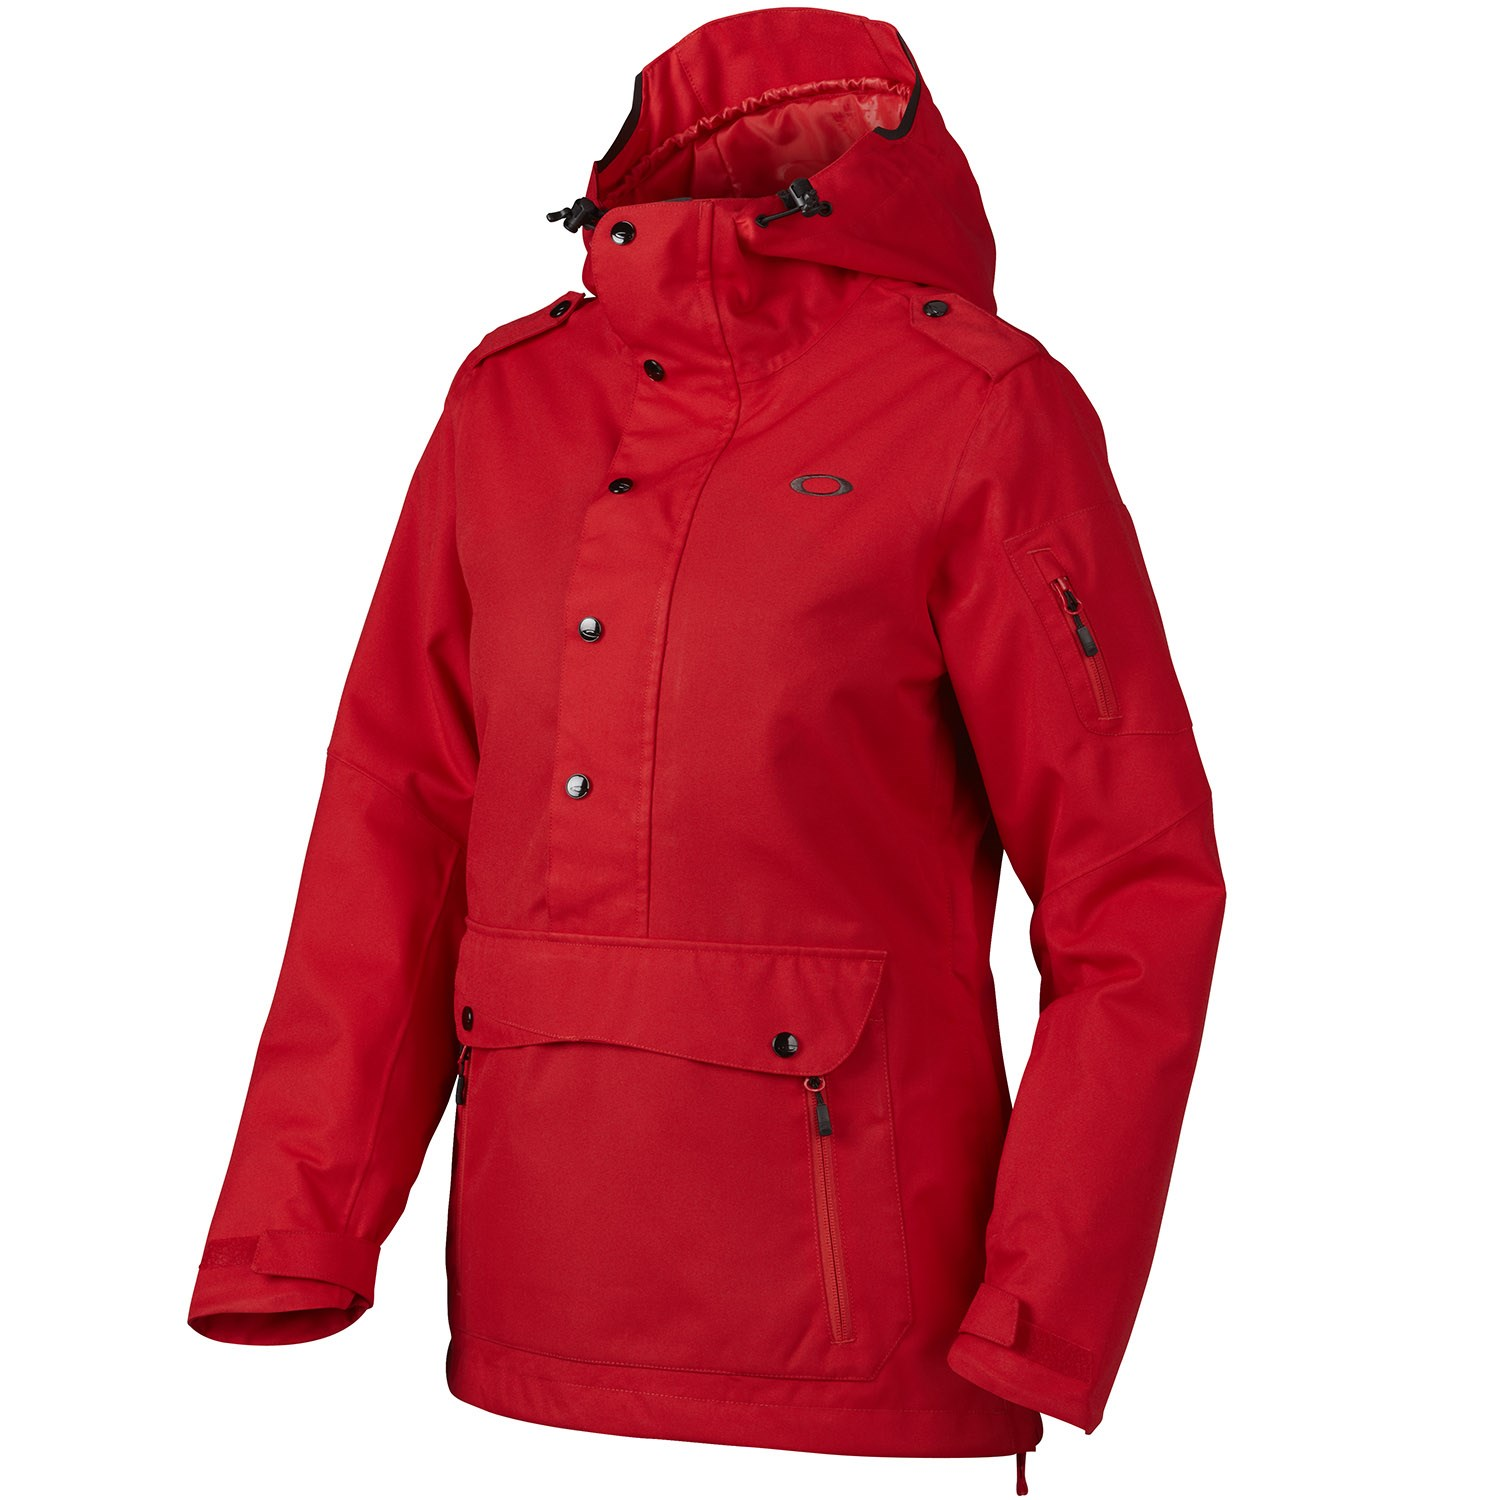 oakley ski jackets on sale  oakley alfa biozone pullover jacket women s red line front